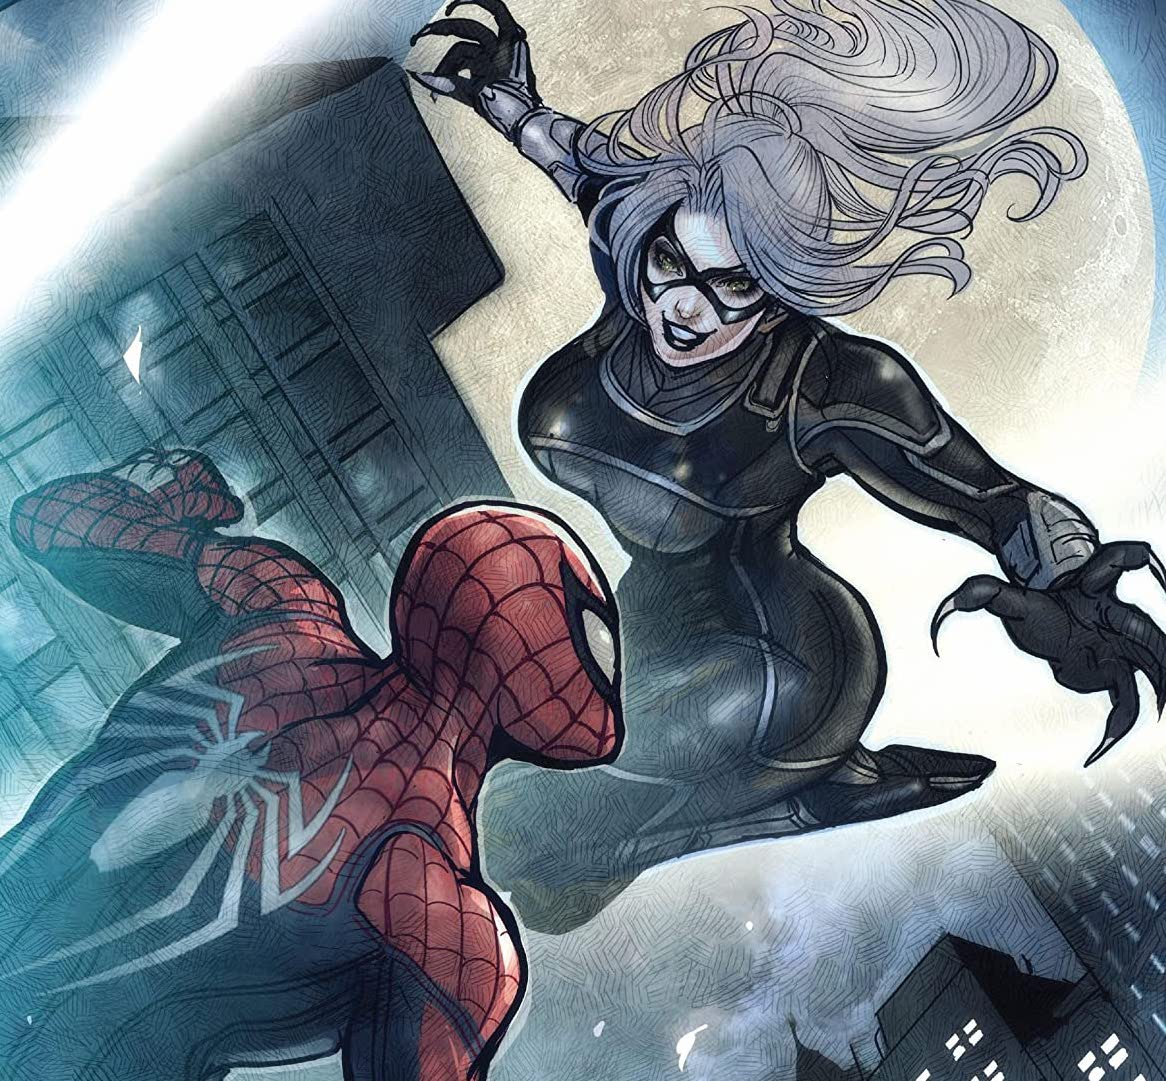 Enjoy Spider-Man PS4 with even more stories in The Black Cat Strikes.